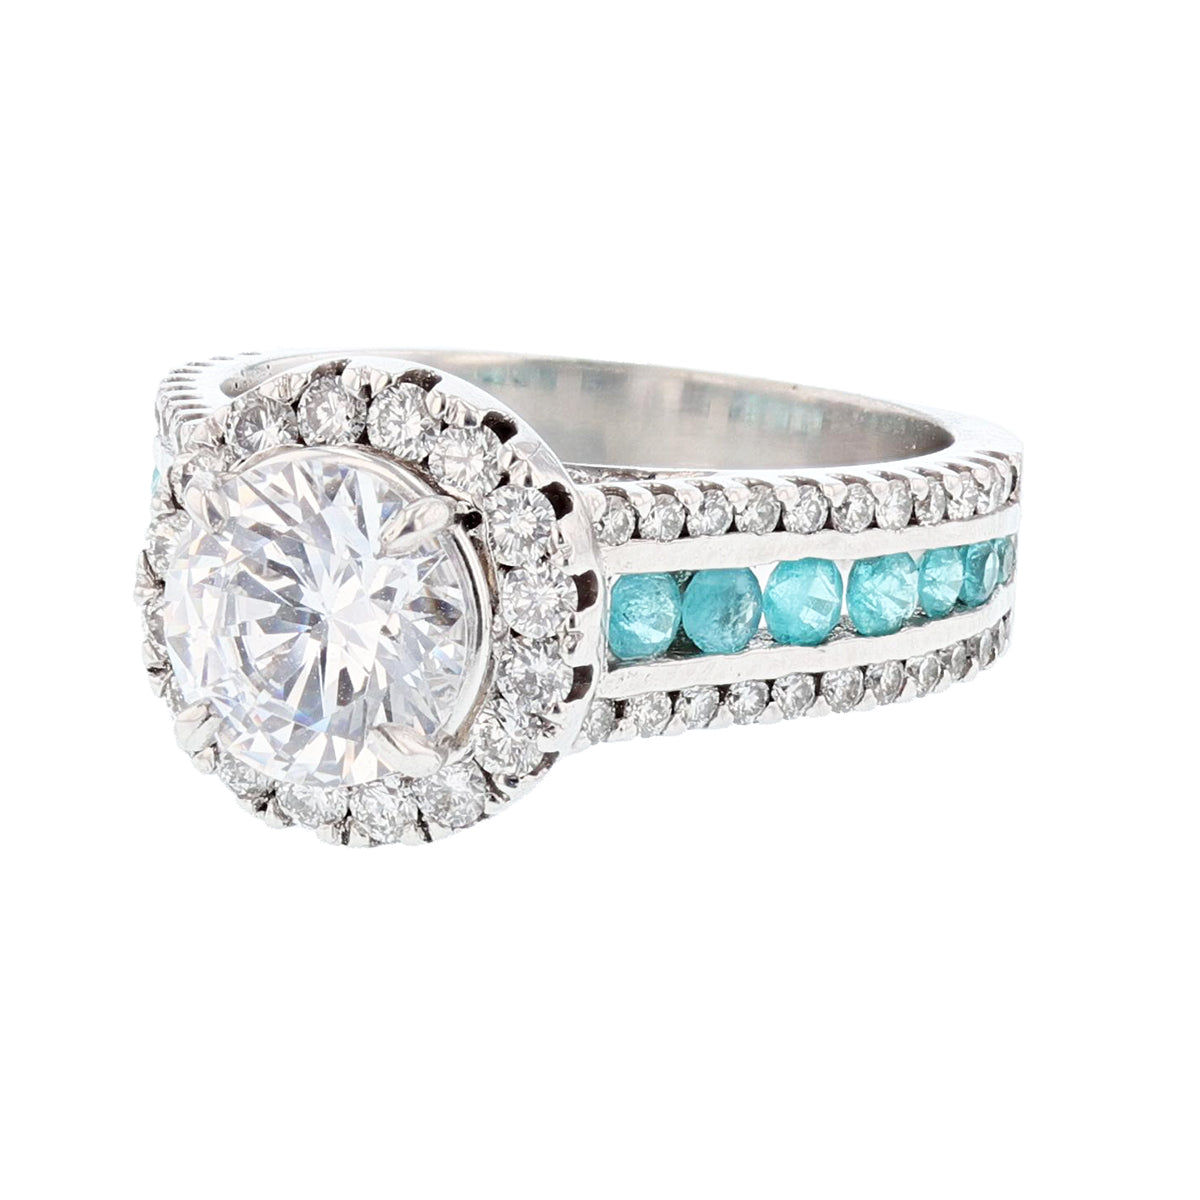 18K White Gold Round Paraiba Tourmaline Diamond Engagement Ring - Nazarelle